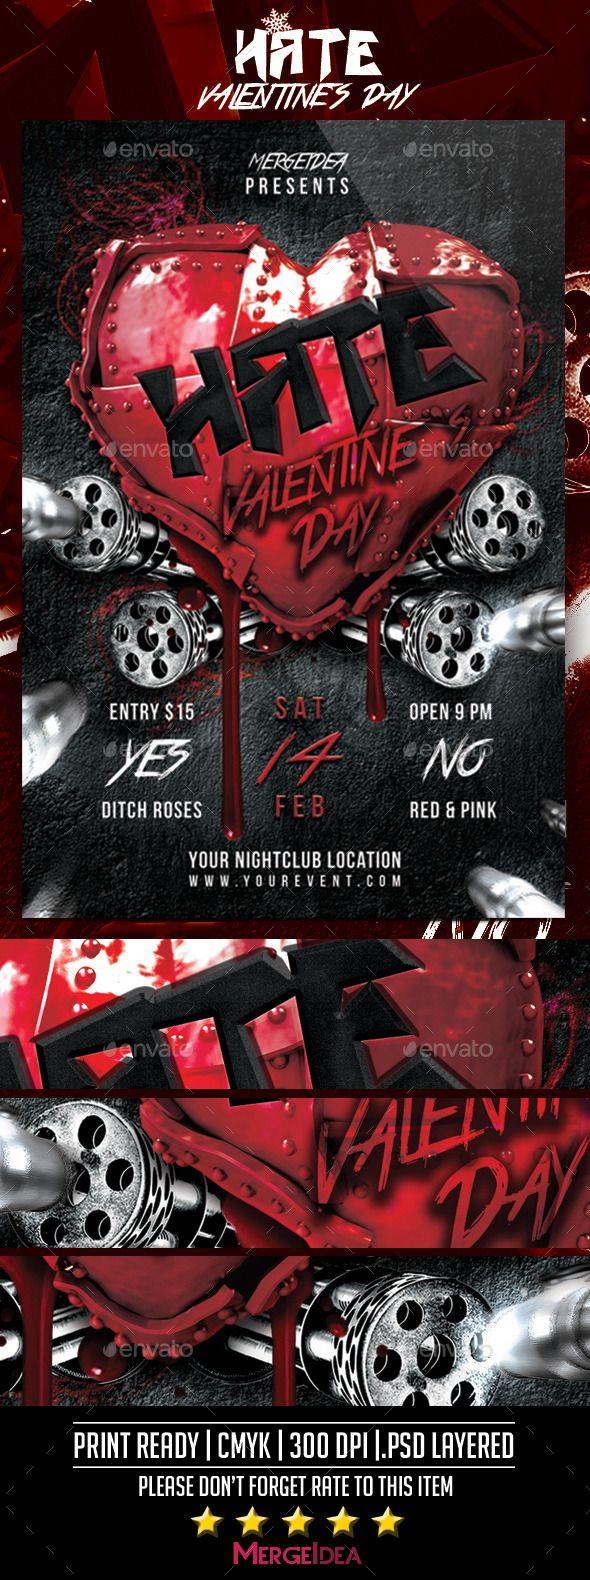 Hate Valentines Day Party Flyer - Clubs & Parties Events